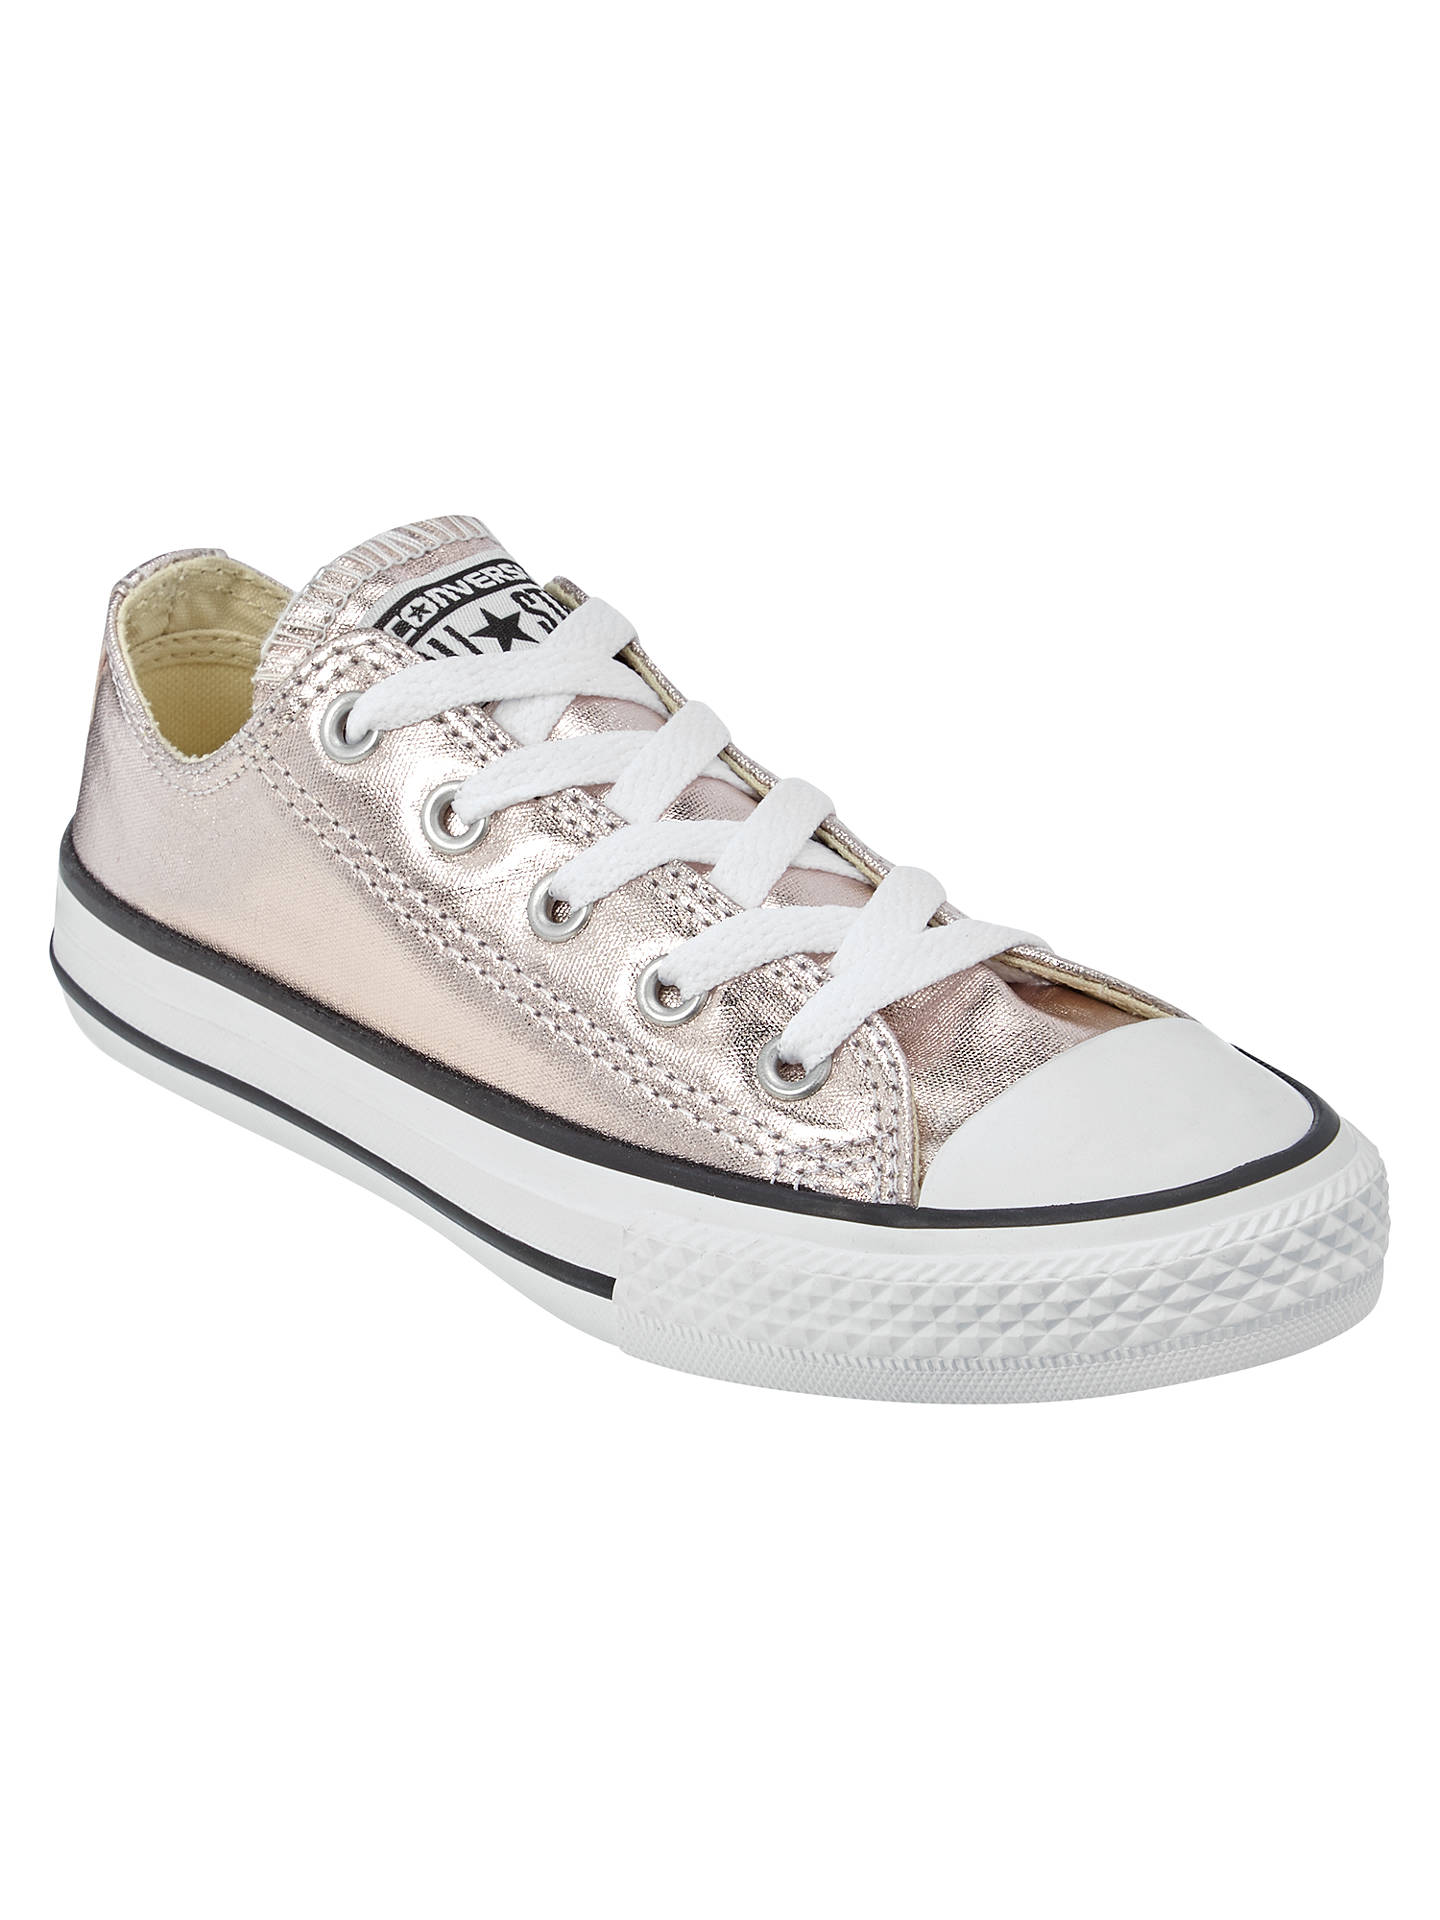 Converse Children's Chuck Taylor All Star Trainers, Rose